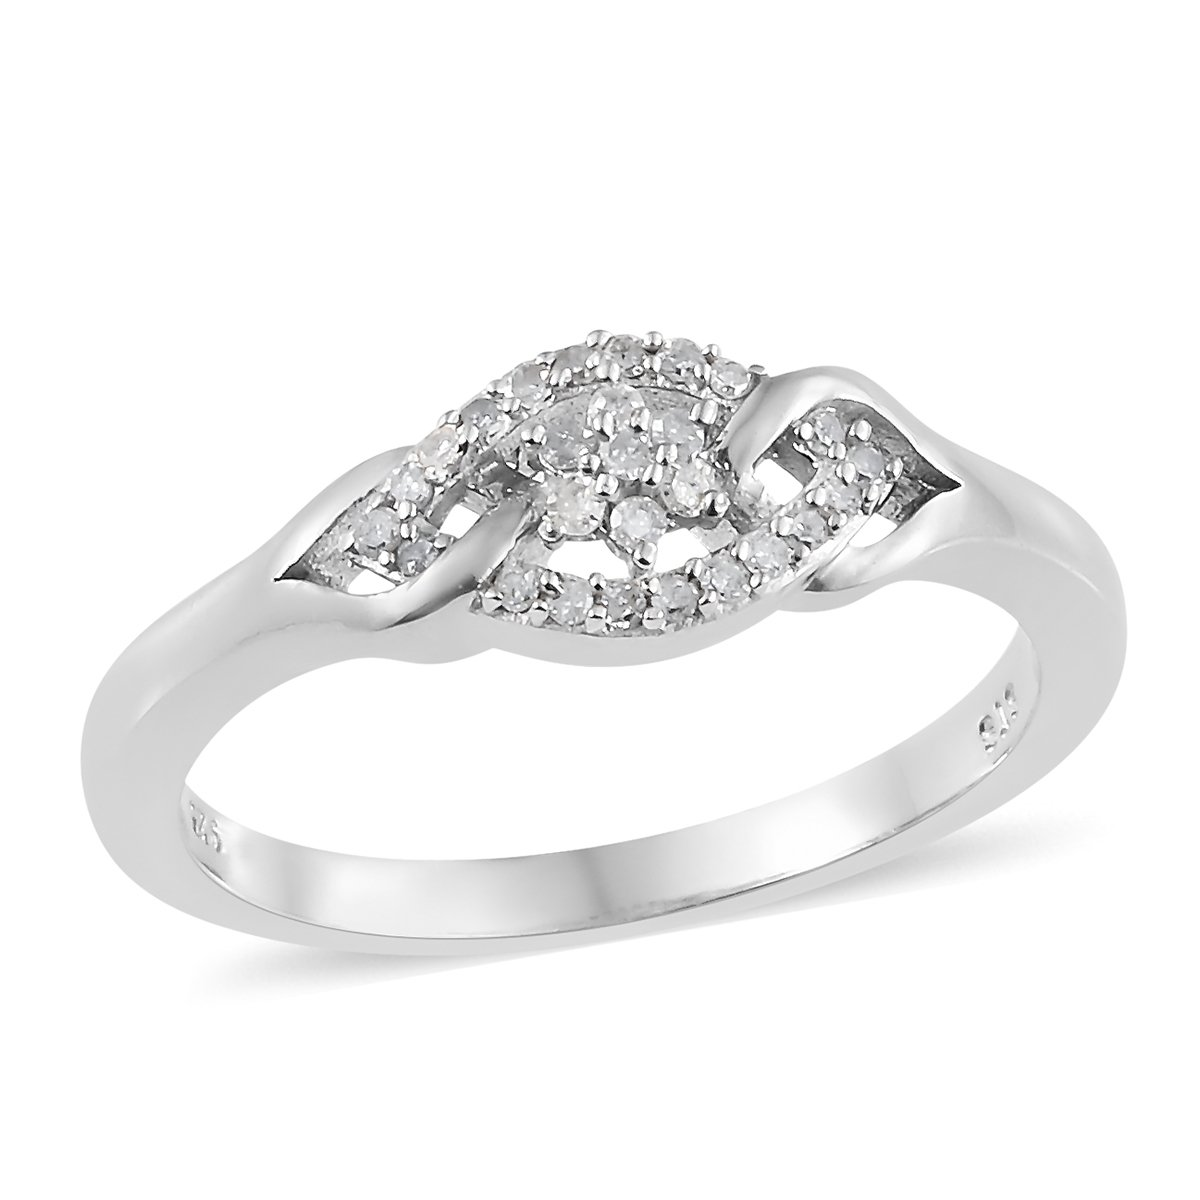 925 Sterling Silver Platinum Plated 0.15 cttw Round Diamond Engagement Ring for Women Size 6